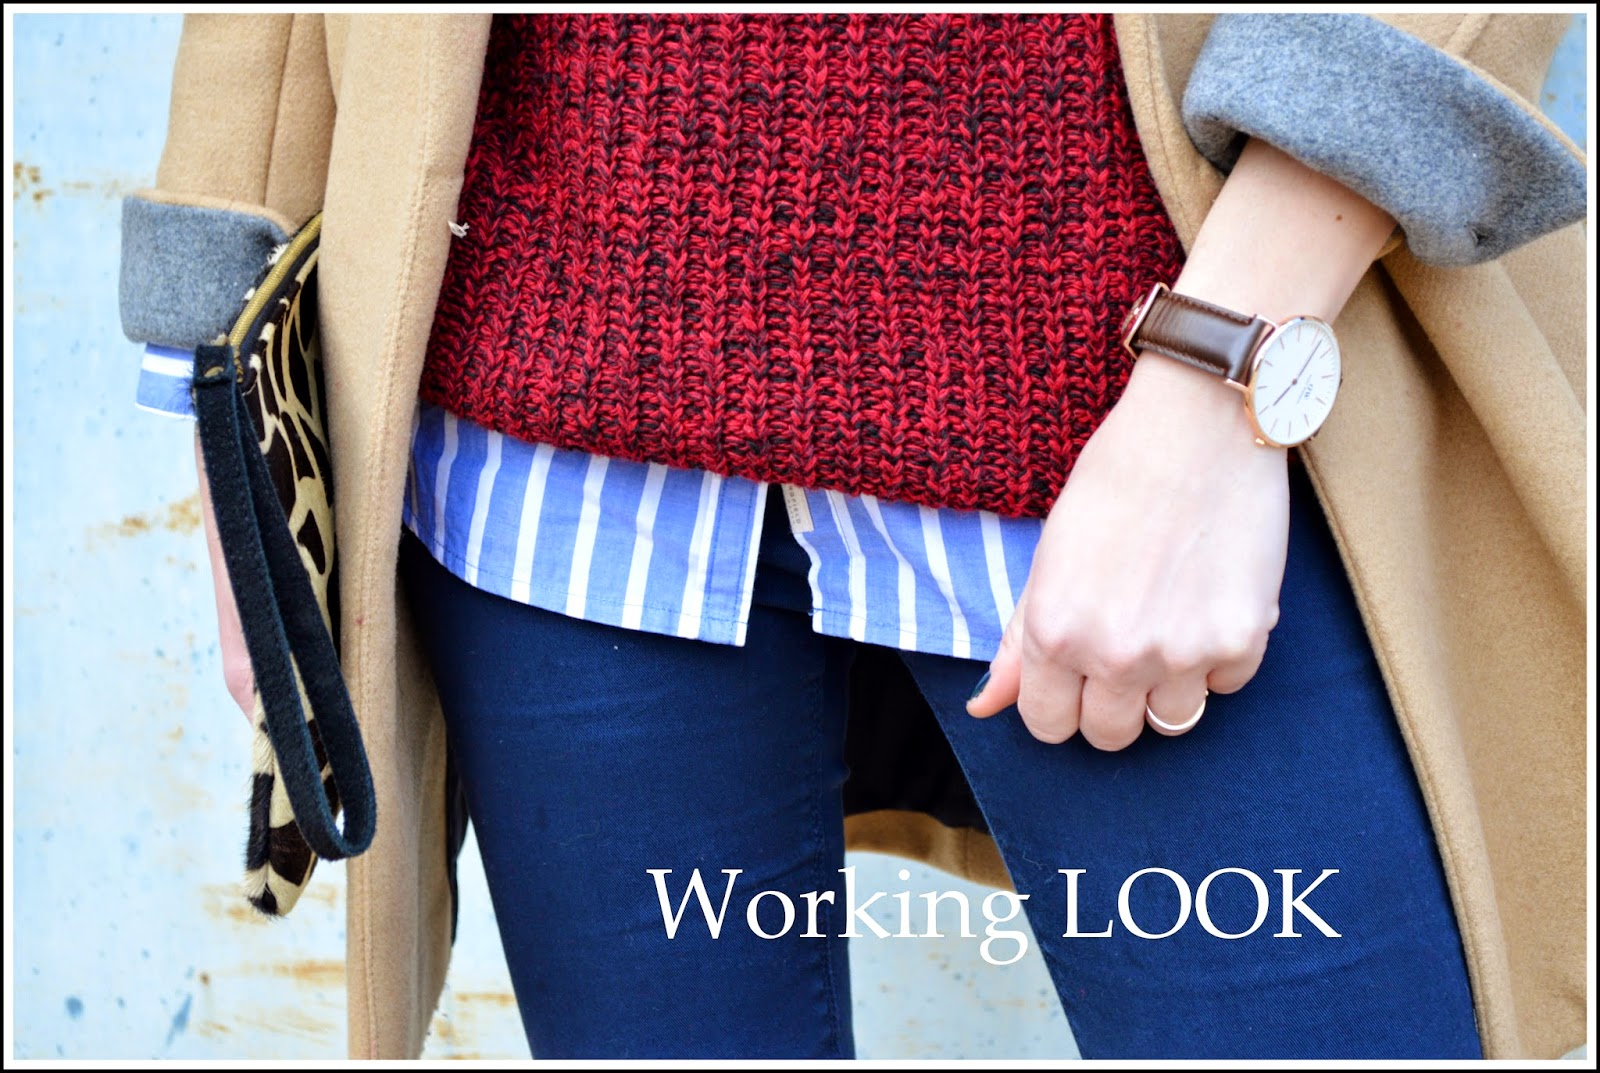 http://lookfortime.blogspot.com.es/2015/02/working-look.html